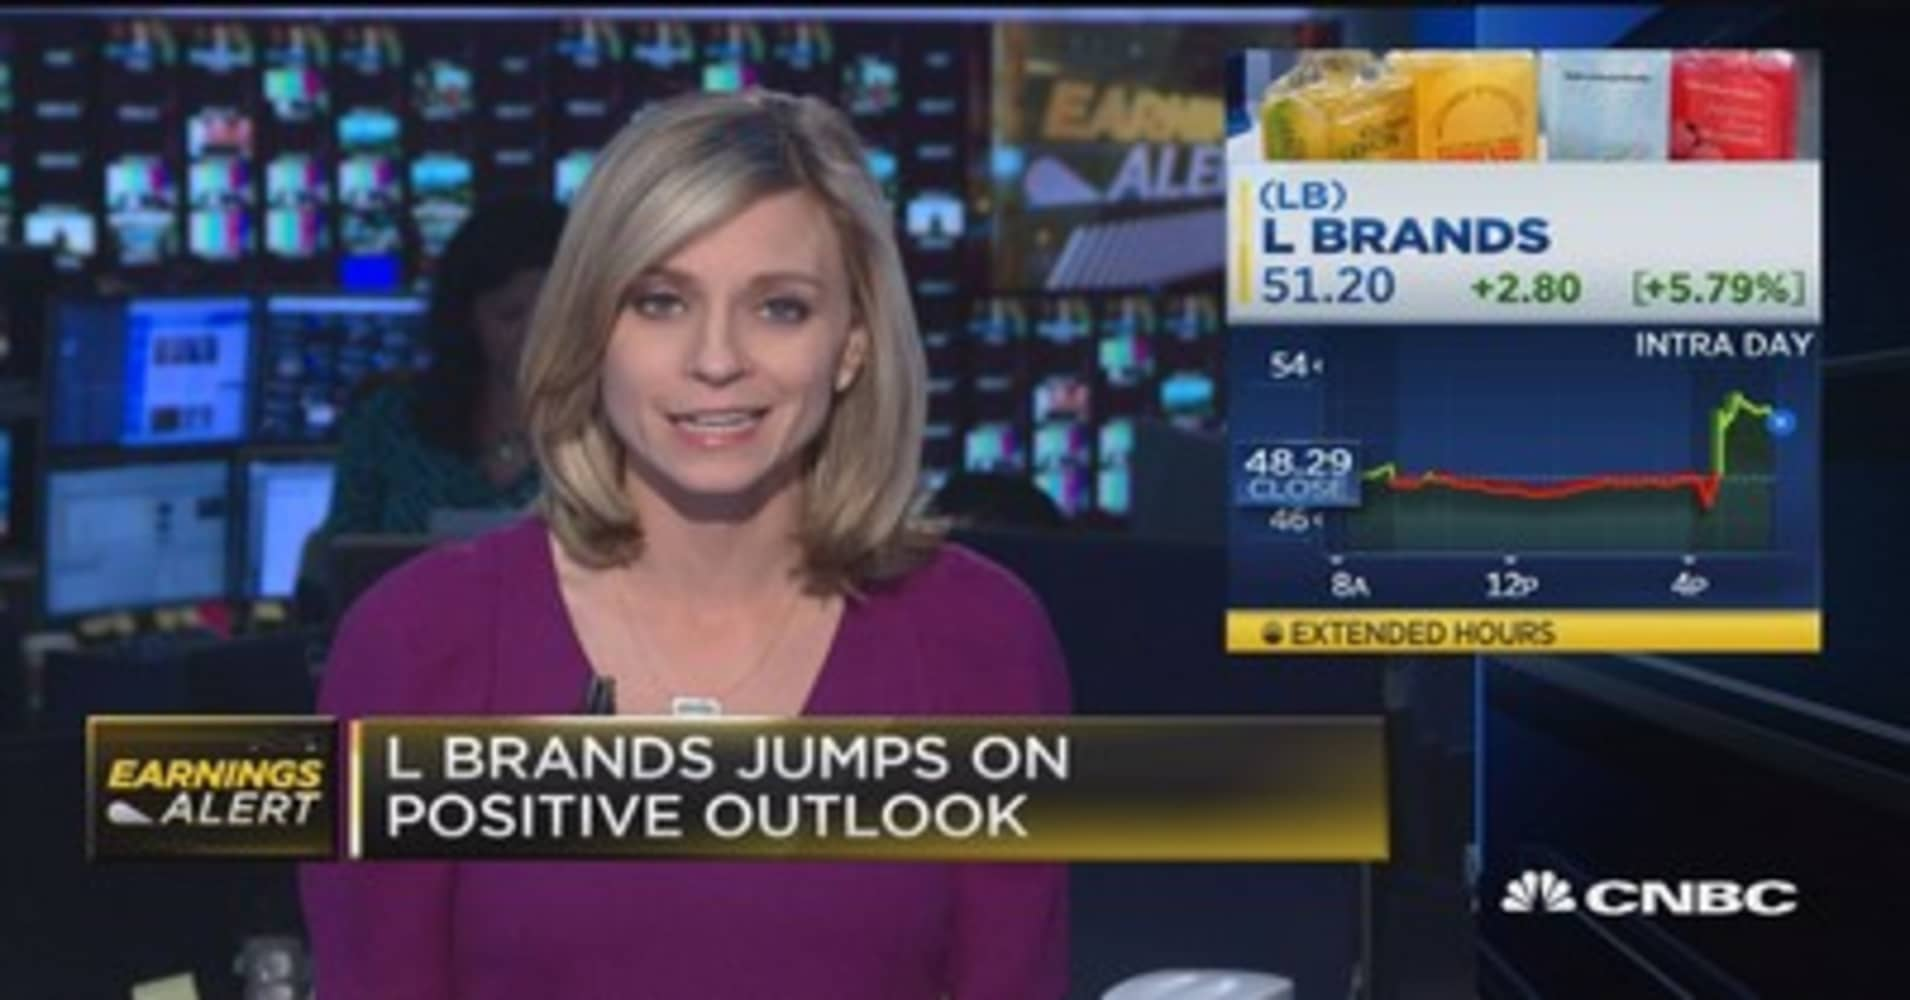 After Hours Stock Quotes After Hours Stock Quotes Cnbc News Reporters Picture